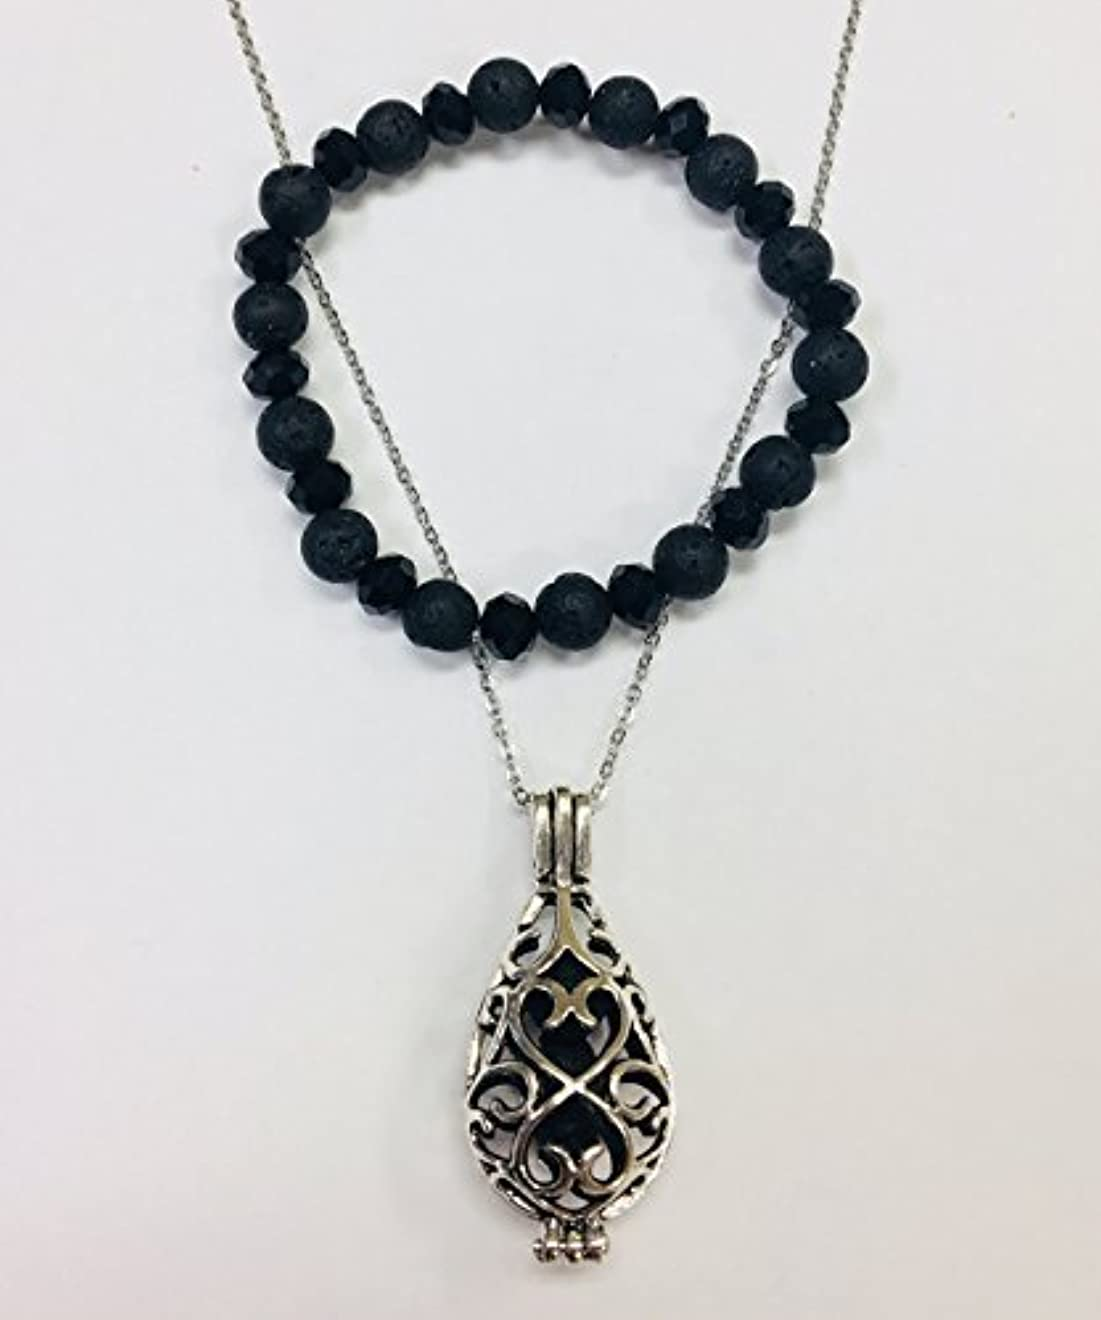 師匠降伏繁栄するEssential Oil Set - Lava Bead Diffuser Locket Necklace and Lava Bead Stretch Bracelet [並行輸入品]